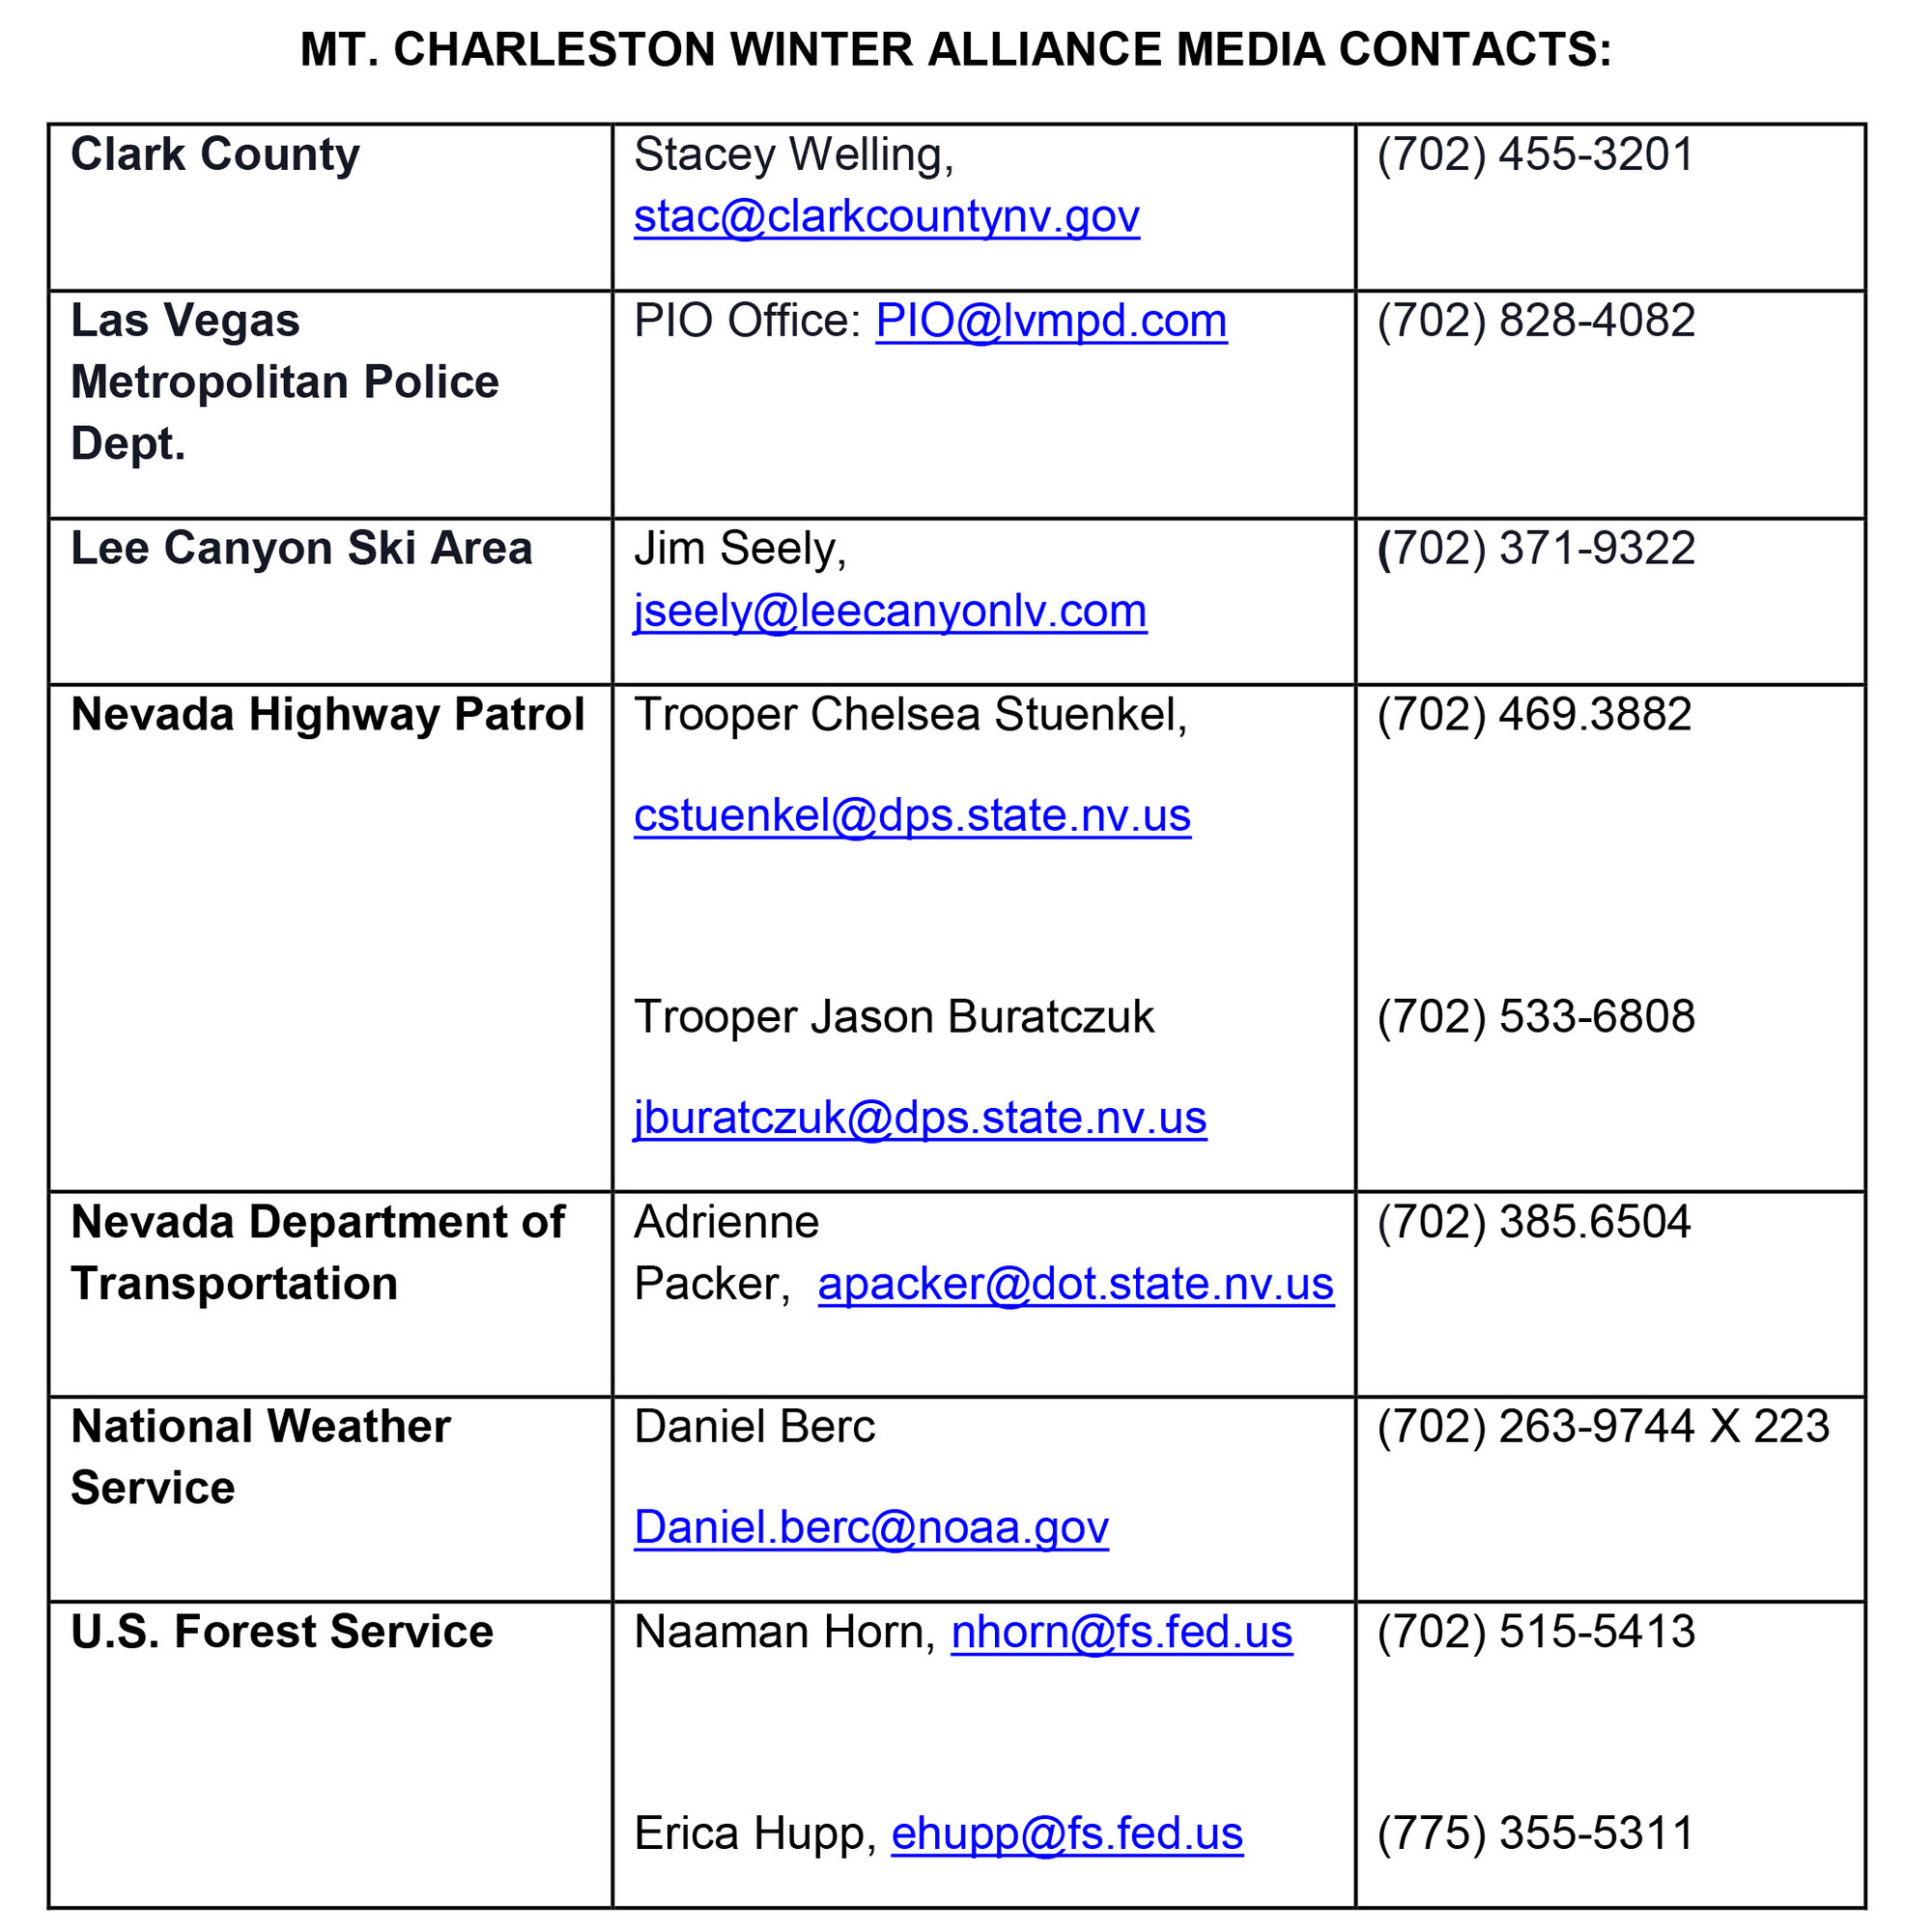 MCWA Media Contacts